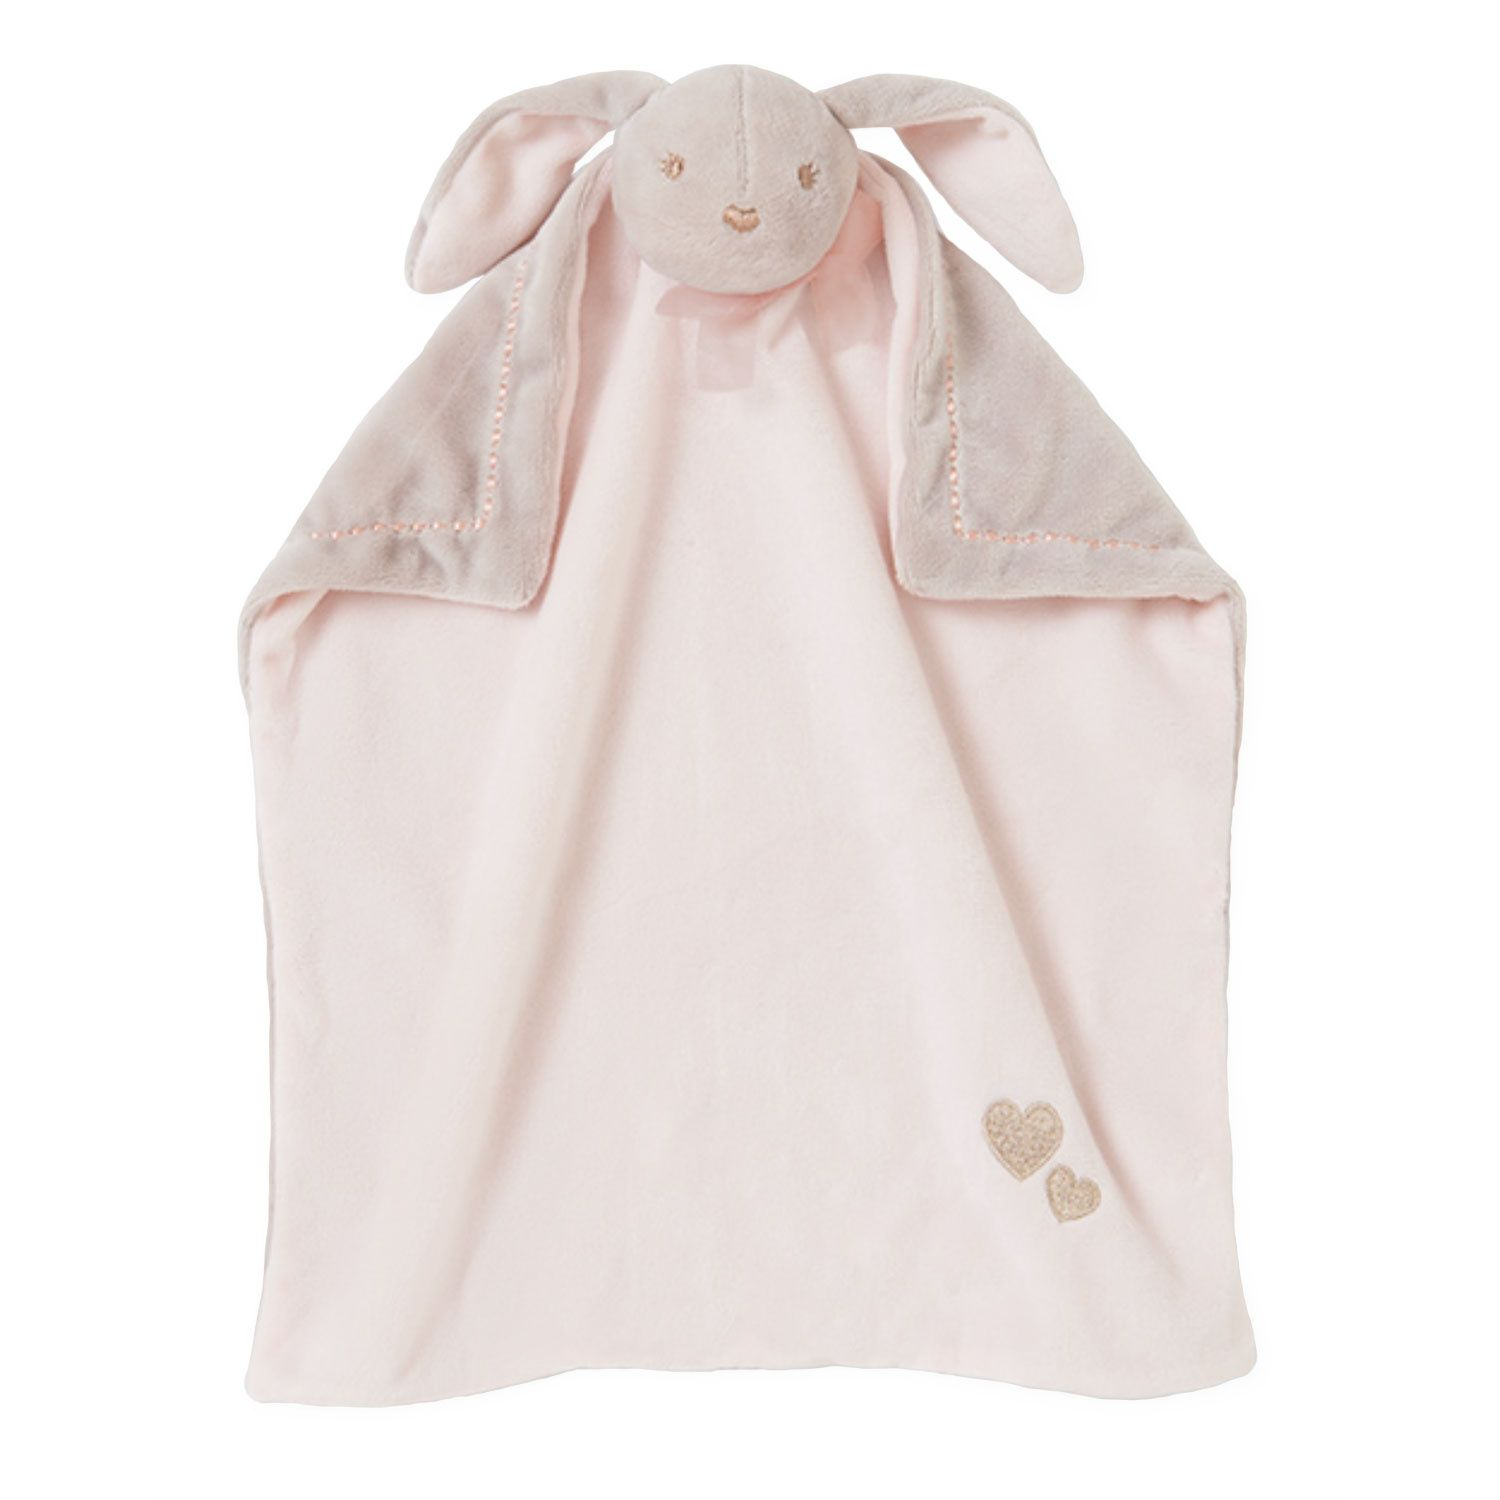 Picture of Mayoral 9025 baby accessory light pink